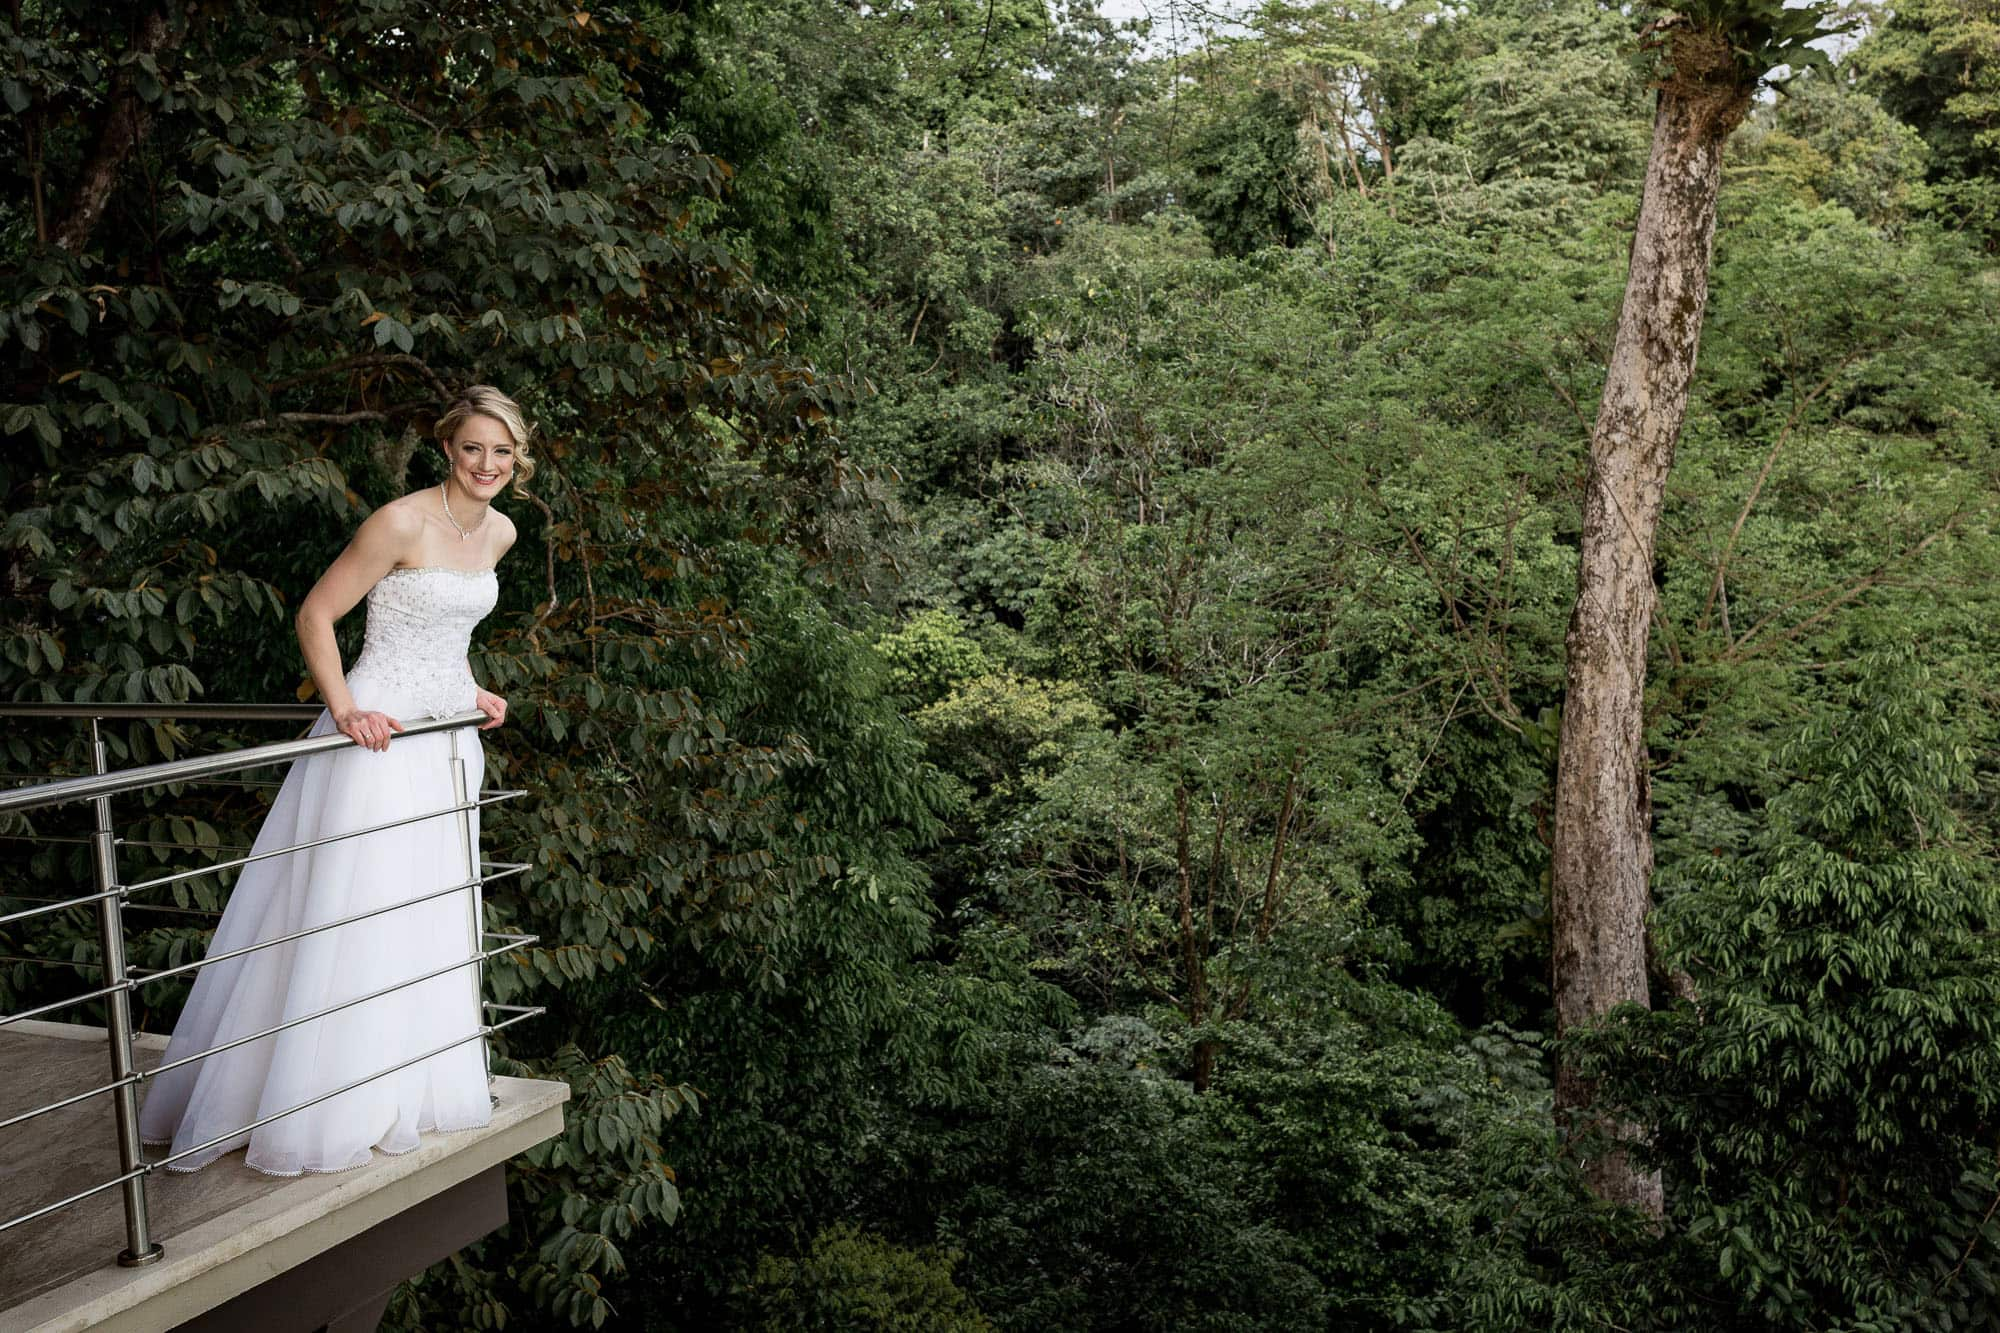 The bride on a balcony with a forest background